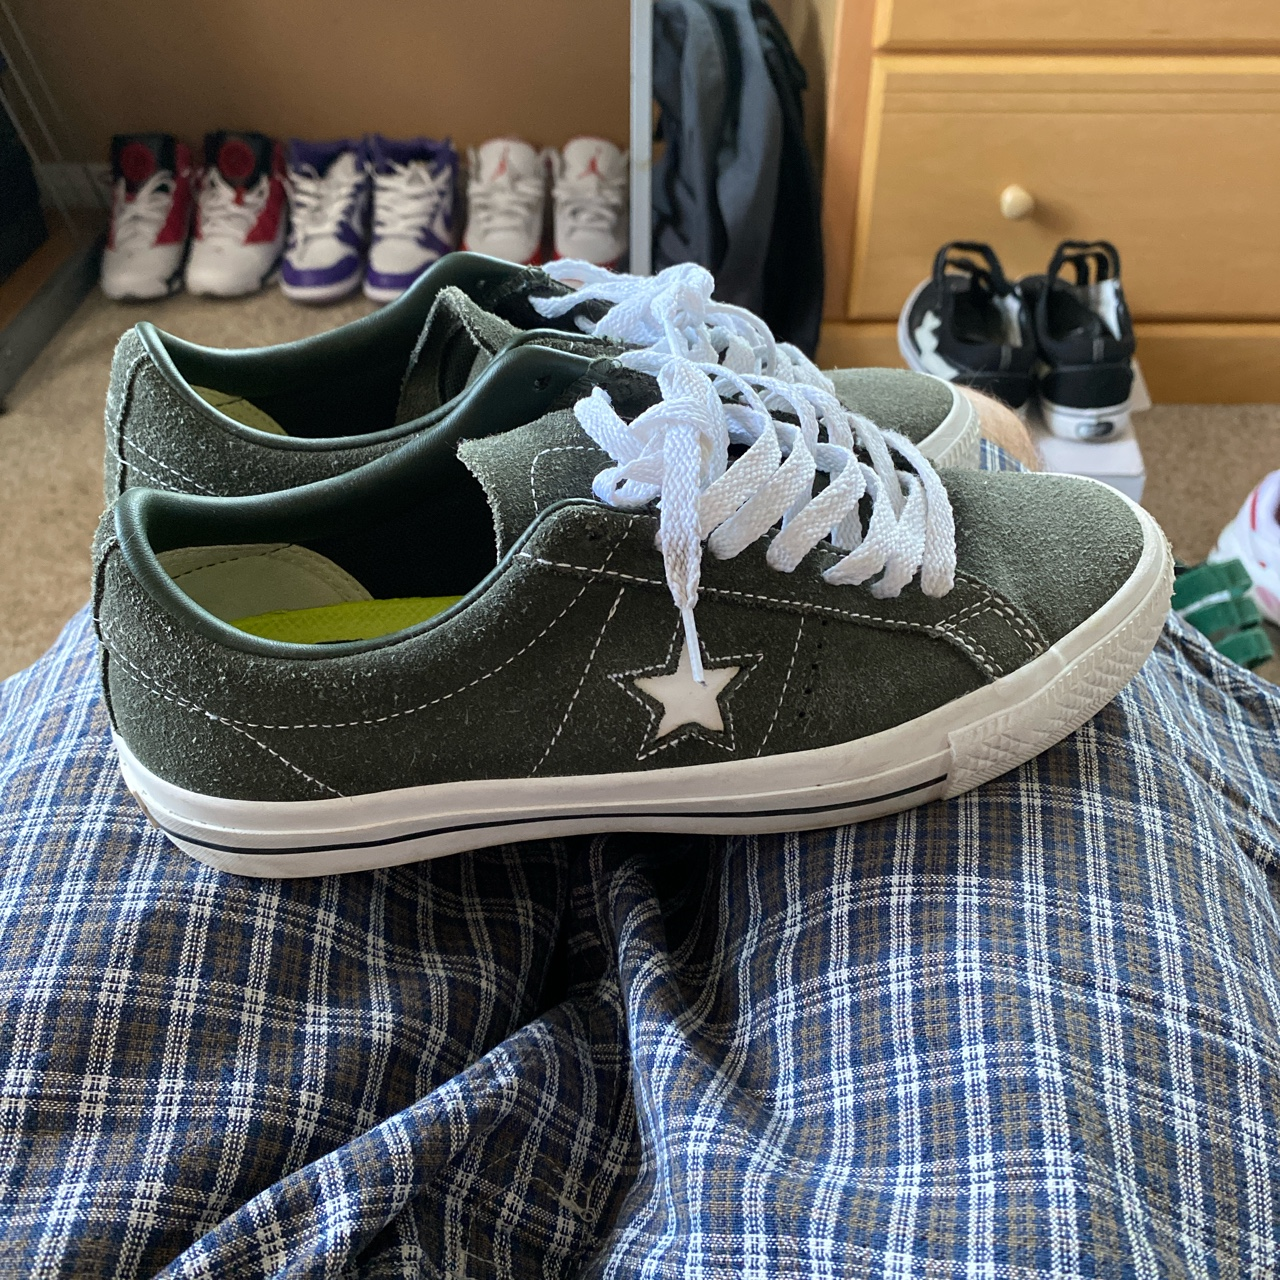 Product Image 1 - Green converse one star pro